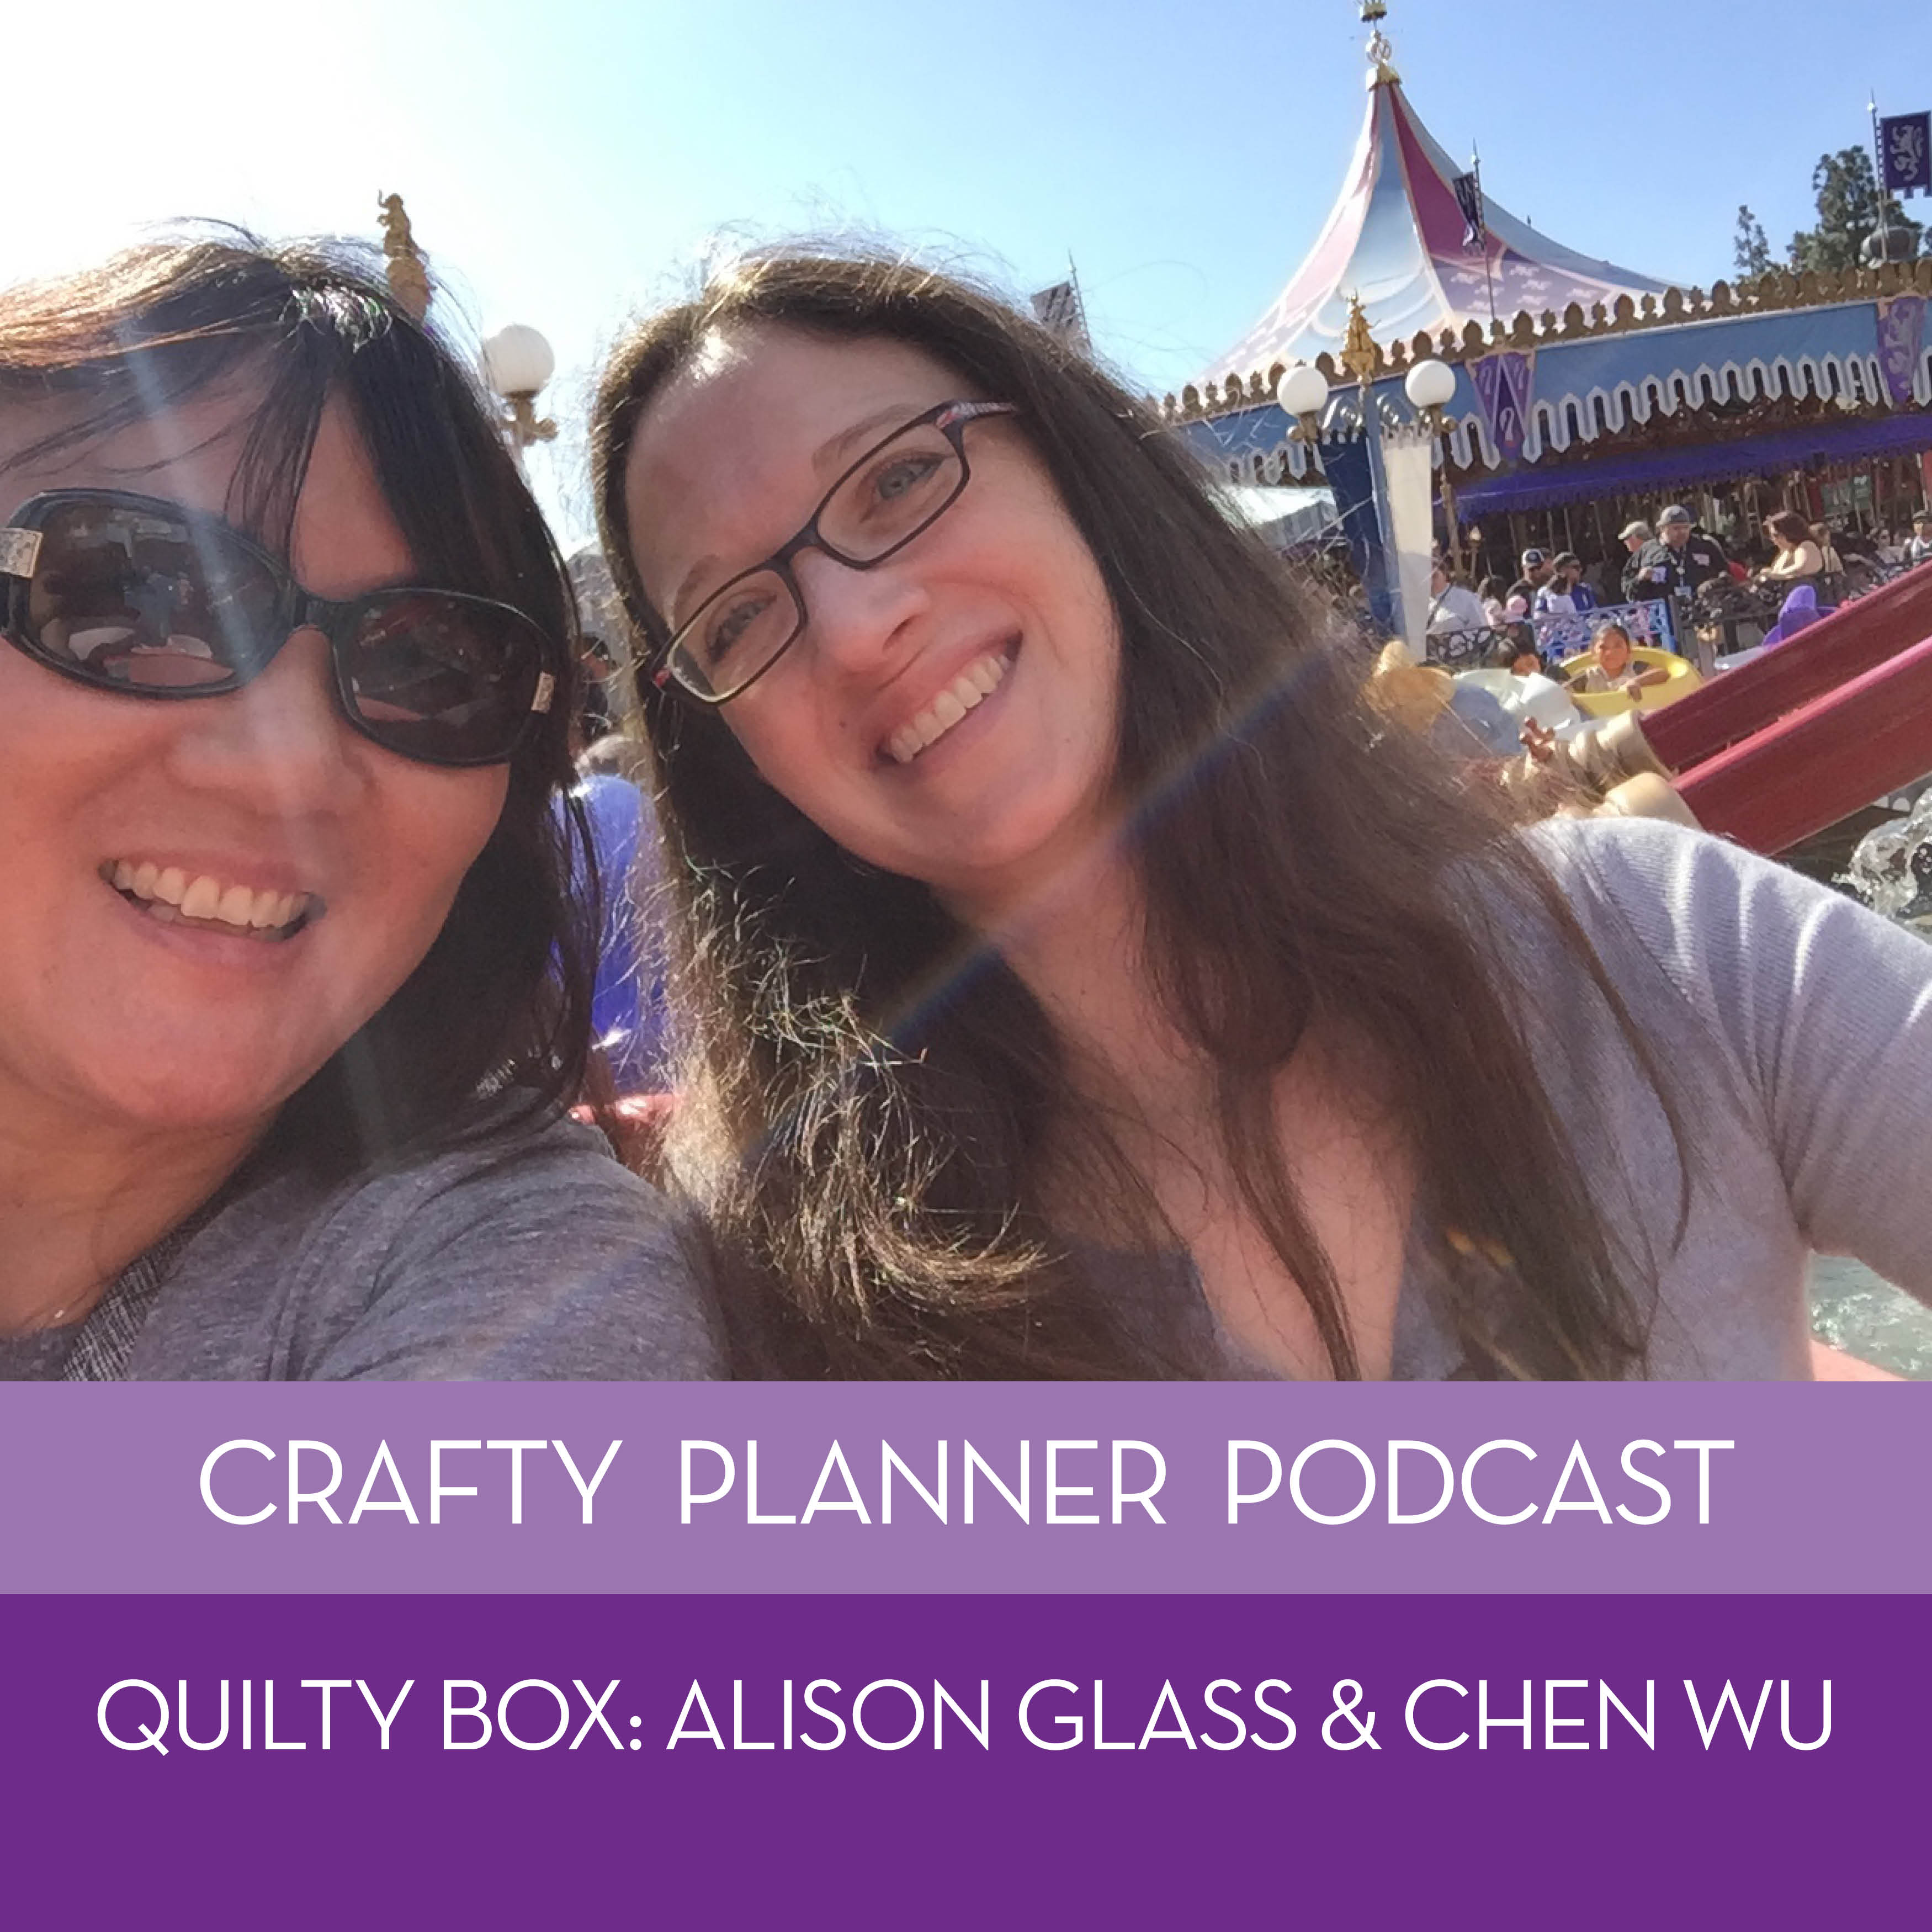 Alison Glass and Chen Wu {Quilty Box March Episode}